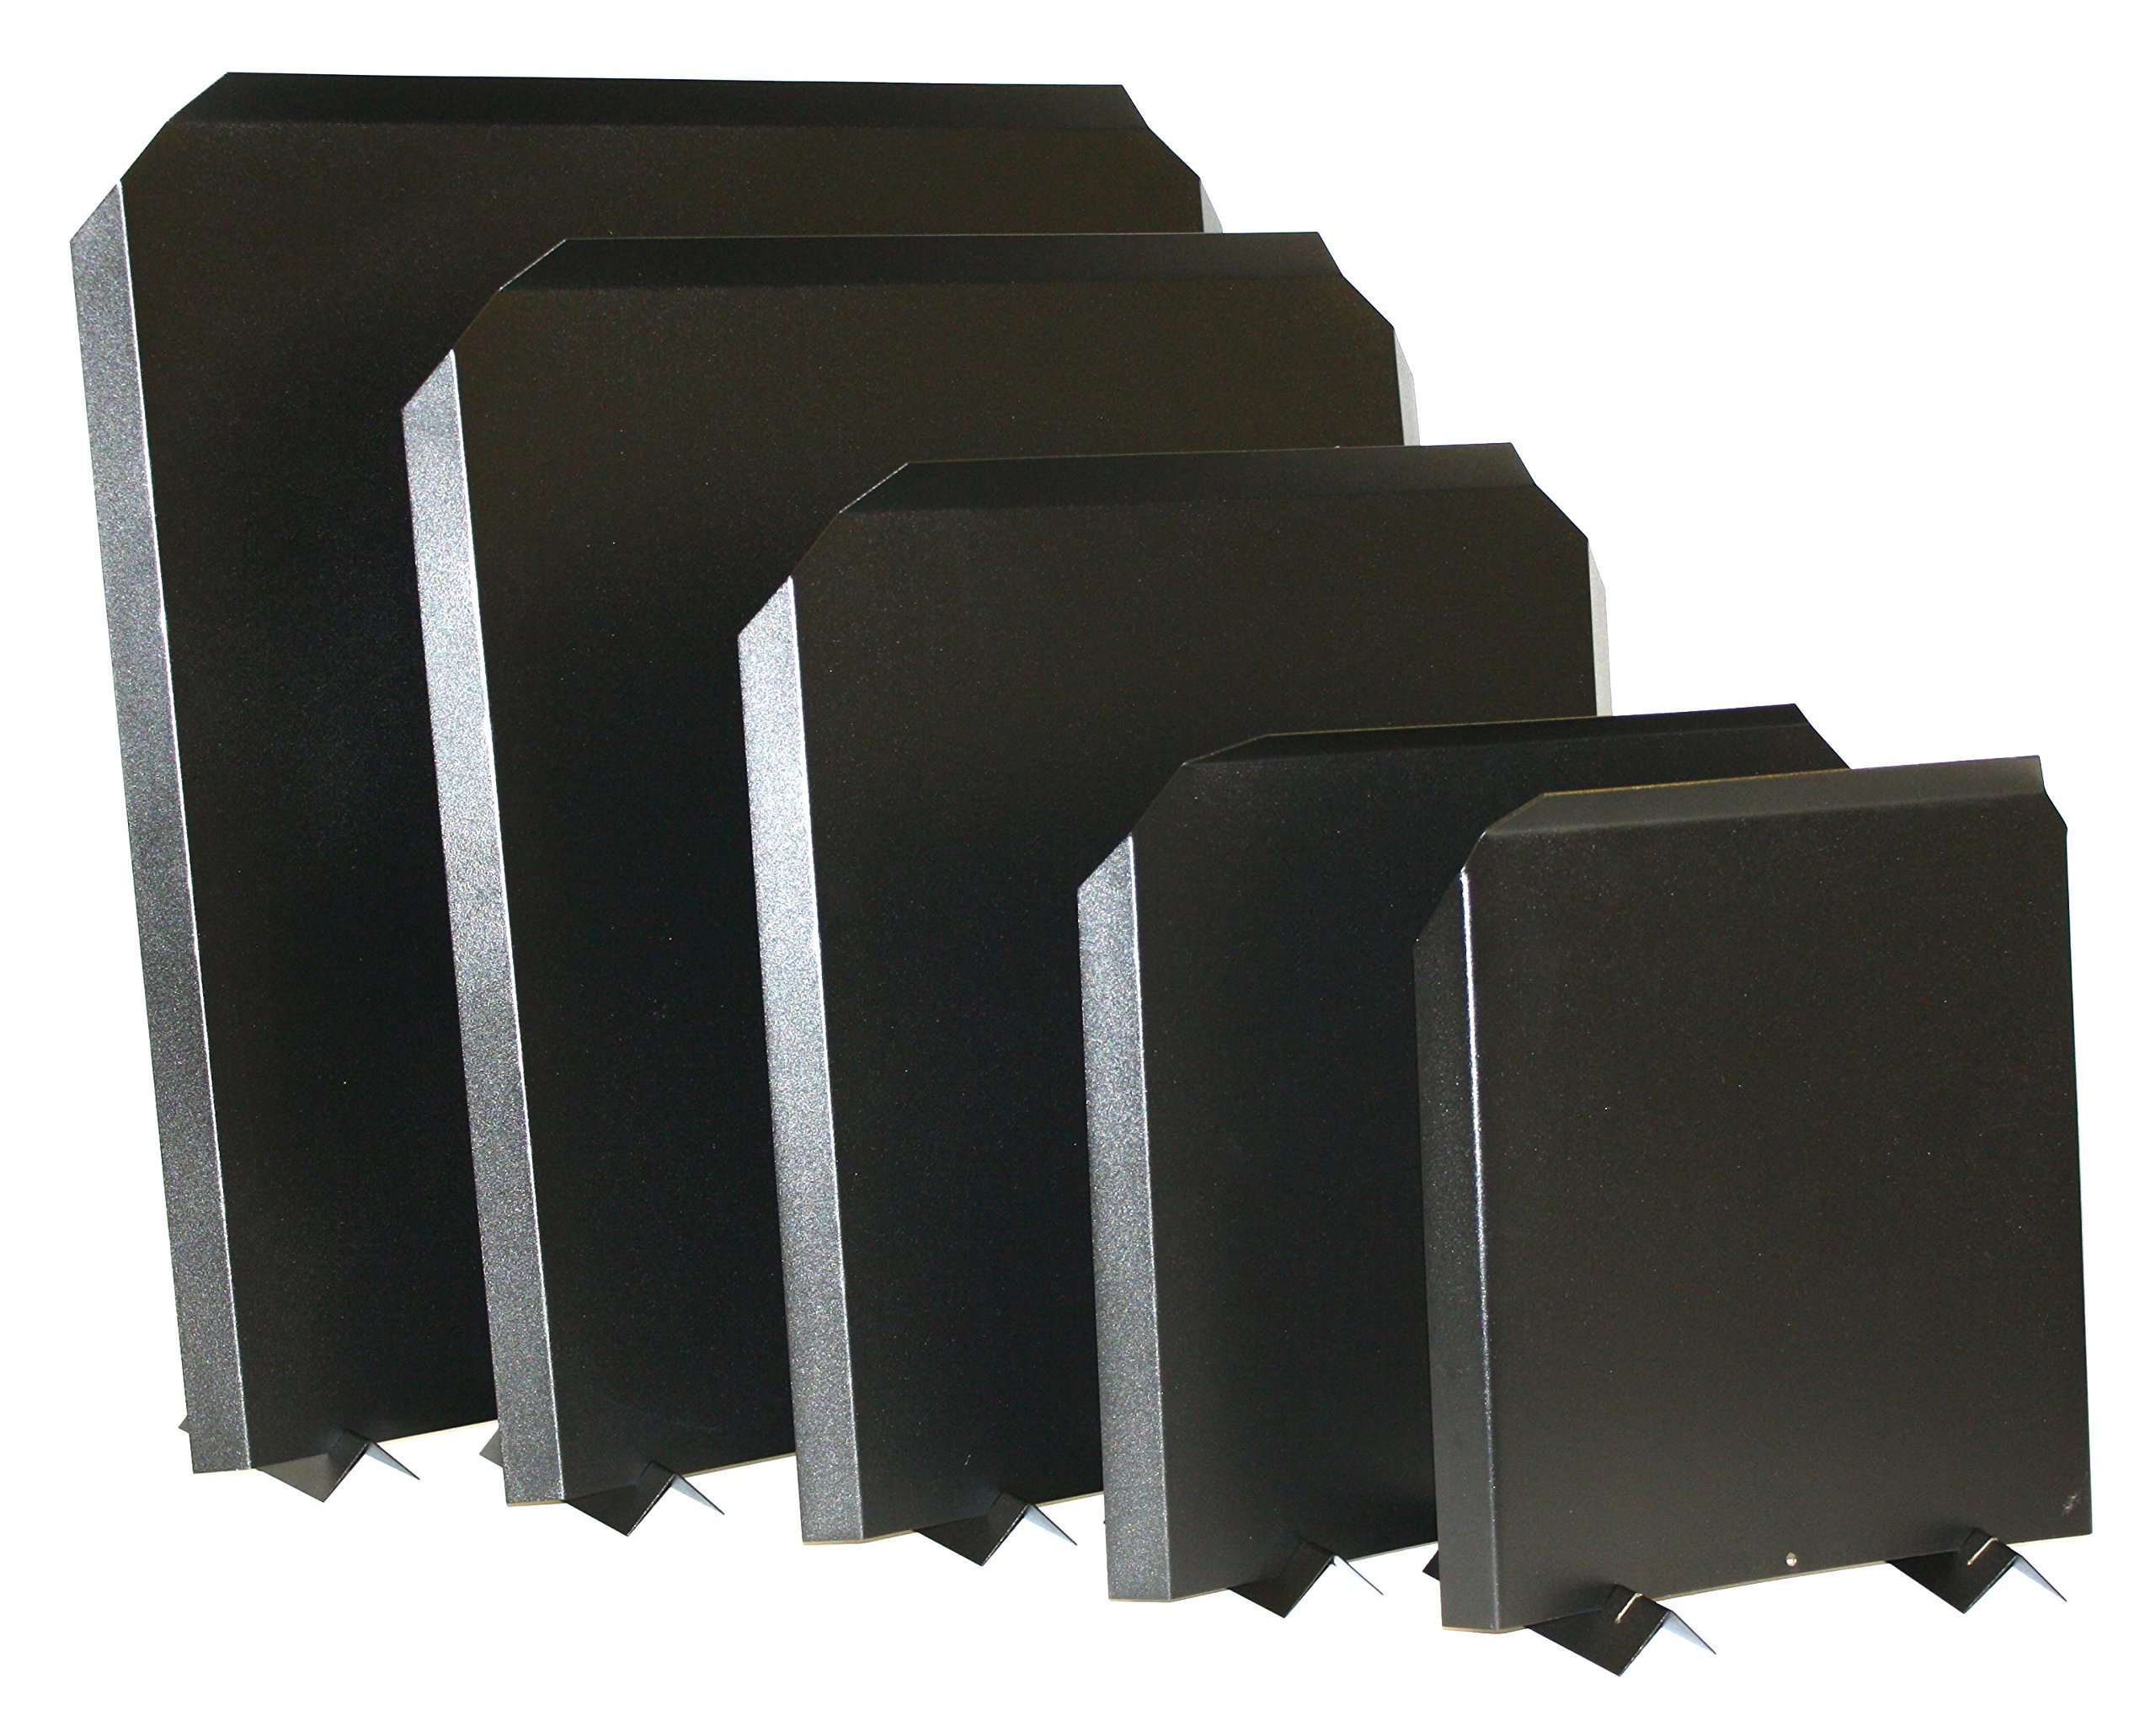 Stainless Steel Firebacks, Painted Black - 20'' x 20'' by HY-C Company